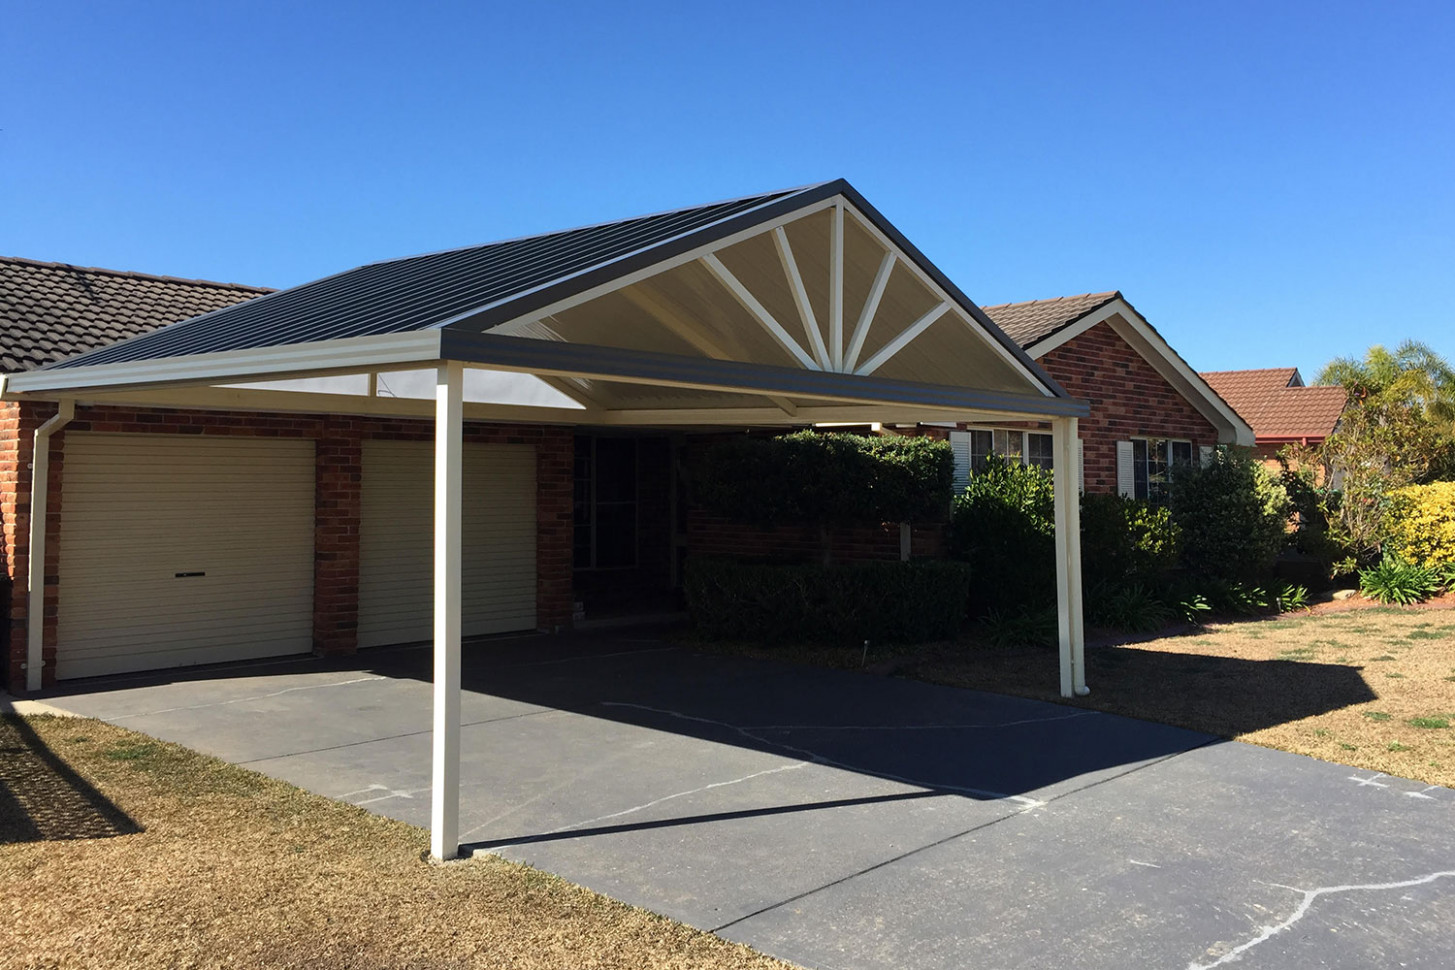 Carports - Sydney Home Improvements by ATS Awnings and Additions